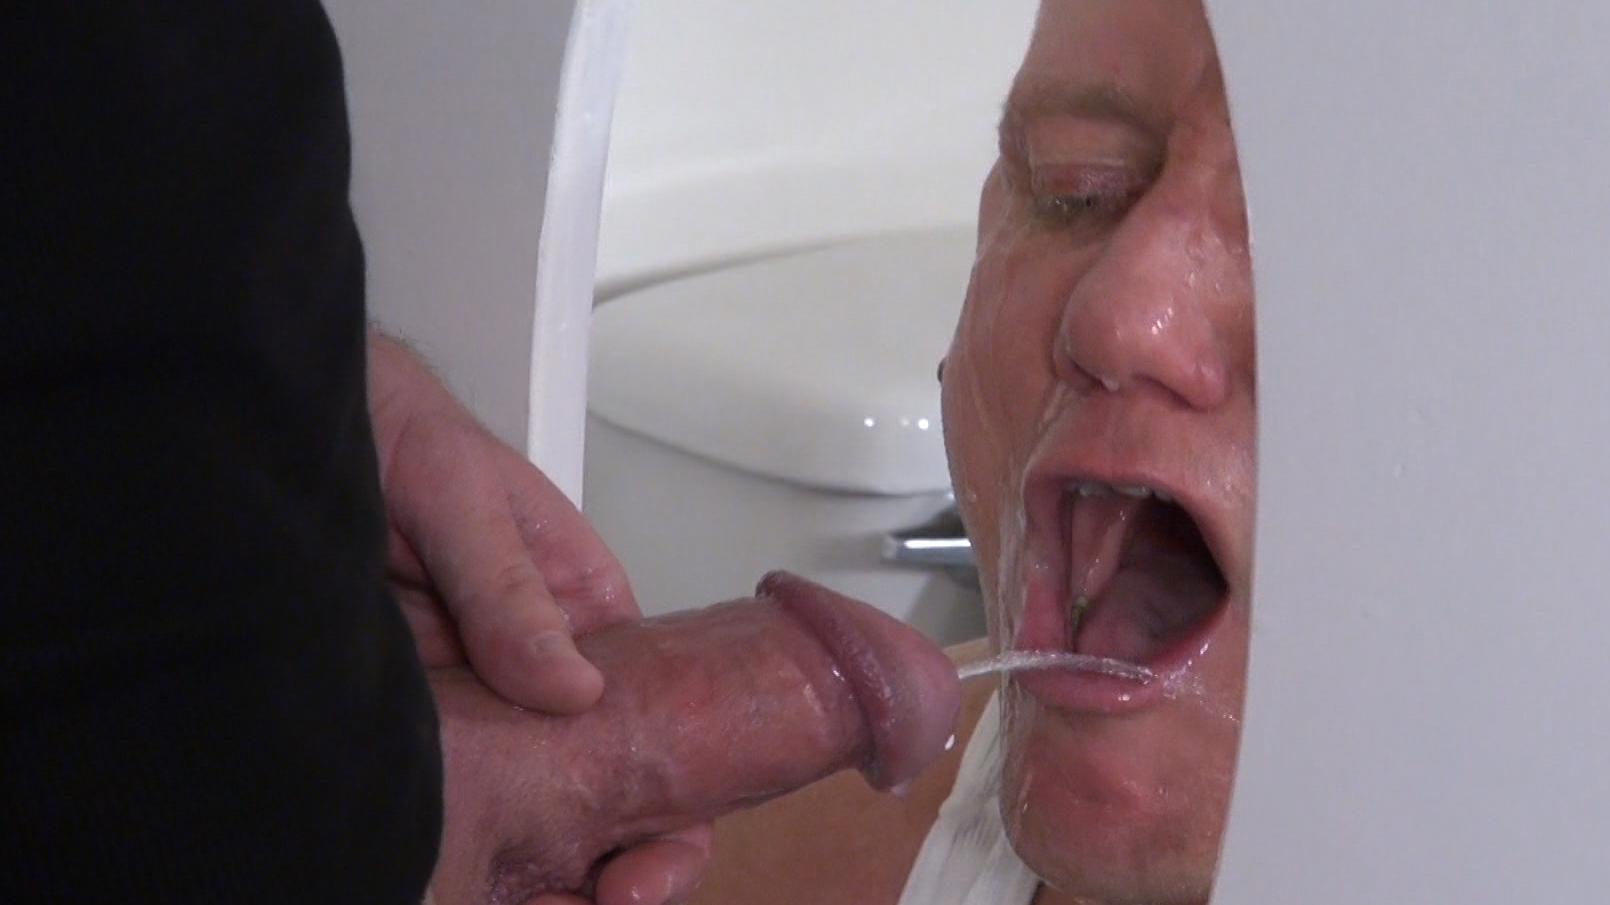 Raw-and-Rough-Jason-Mitchell-Mason-Garet-Nick-Moretti-and-Cope-Truck-Stop-Sex-Piss-play-01 Piss And Cock Play In A Truck Stop Bathroom With Four Truckers